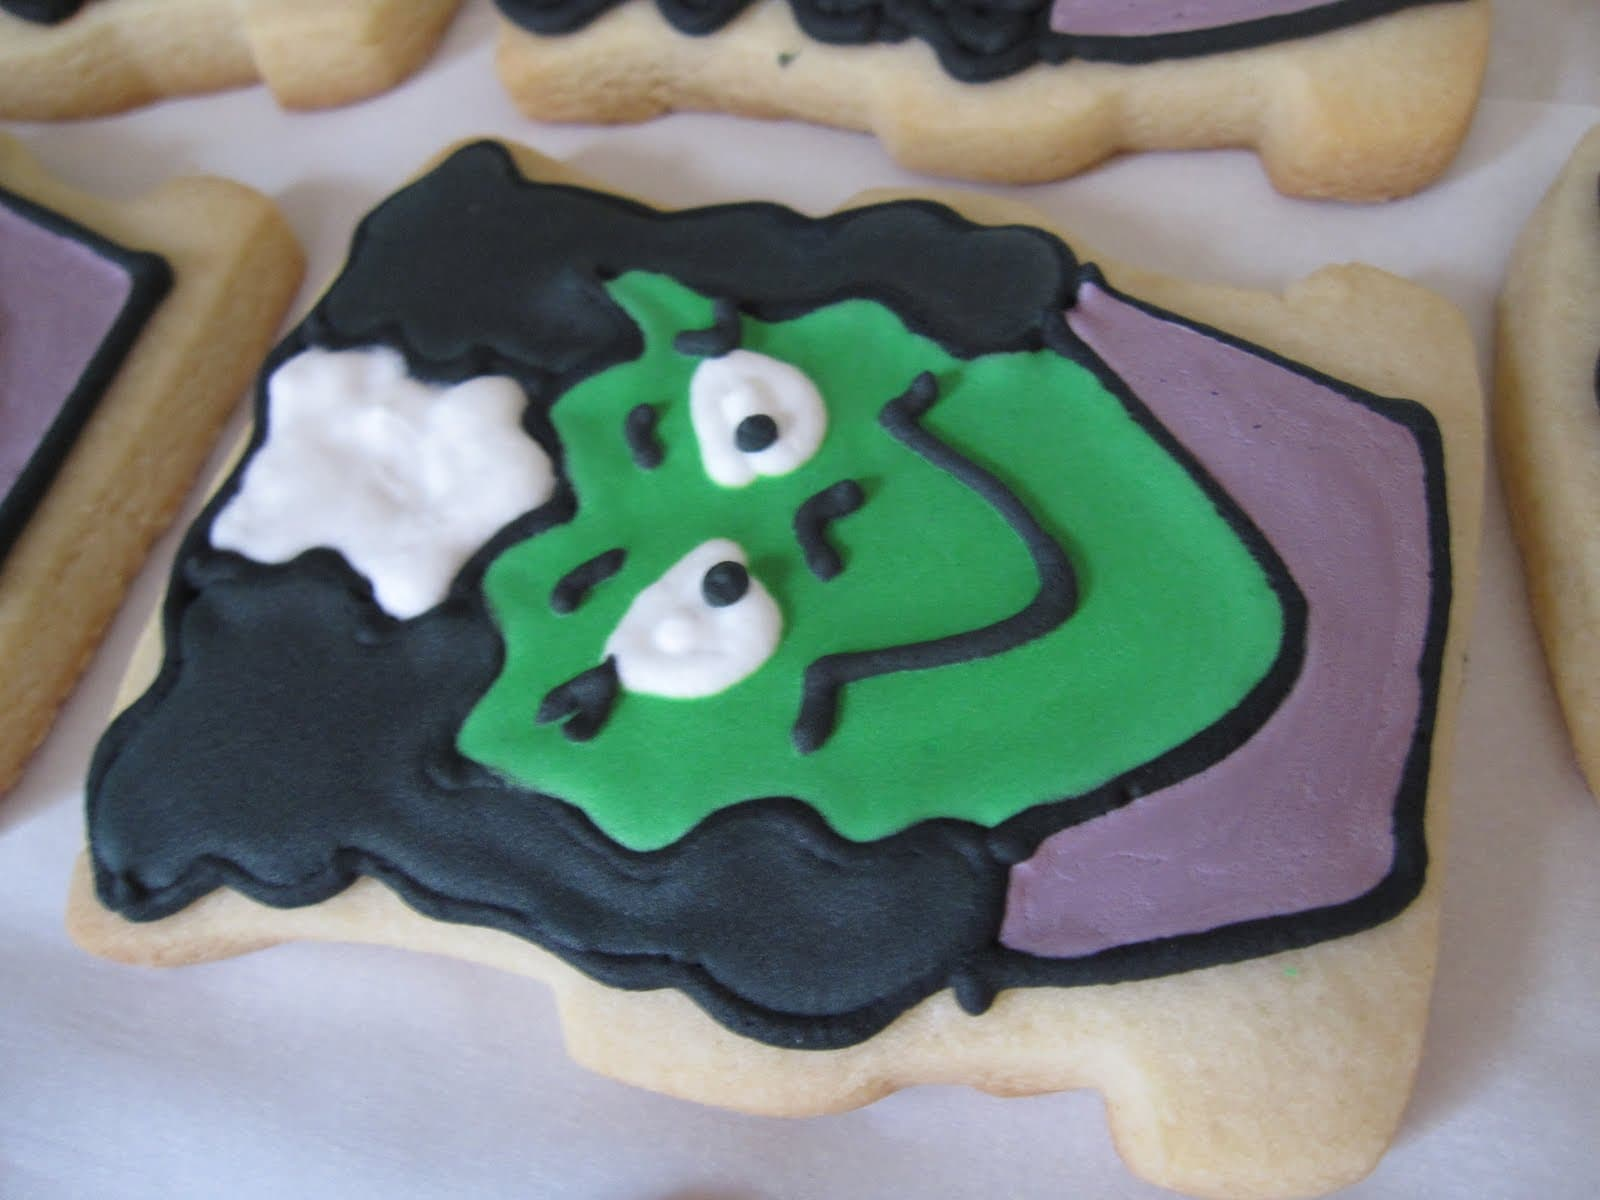 Close-up of a Bride of Frankenstein decorated cookie